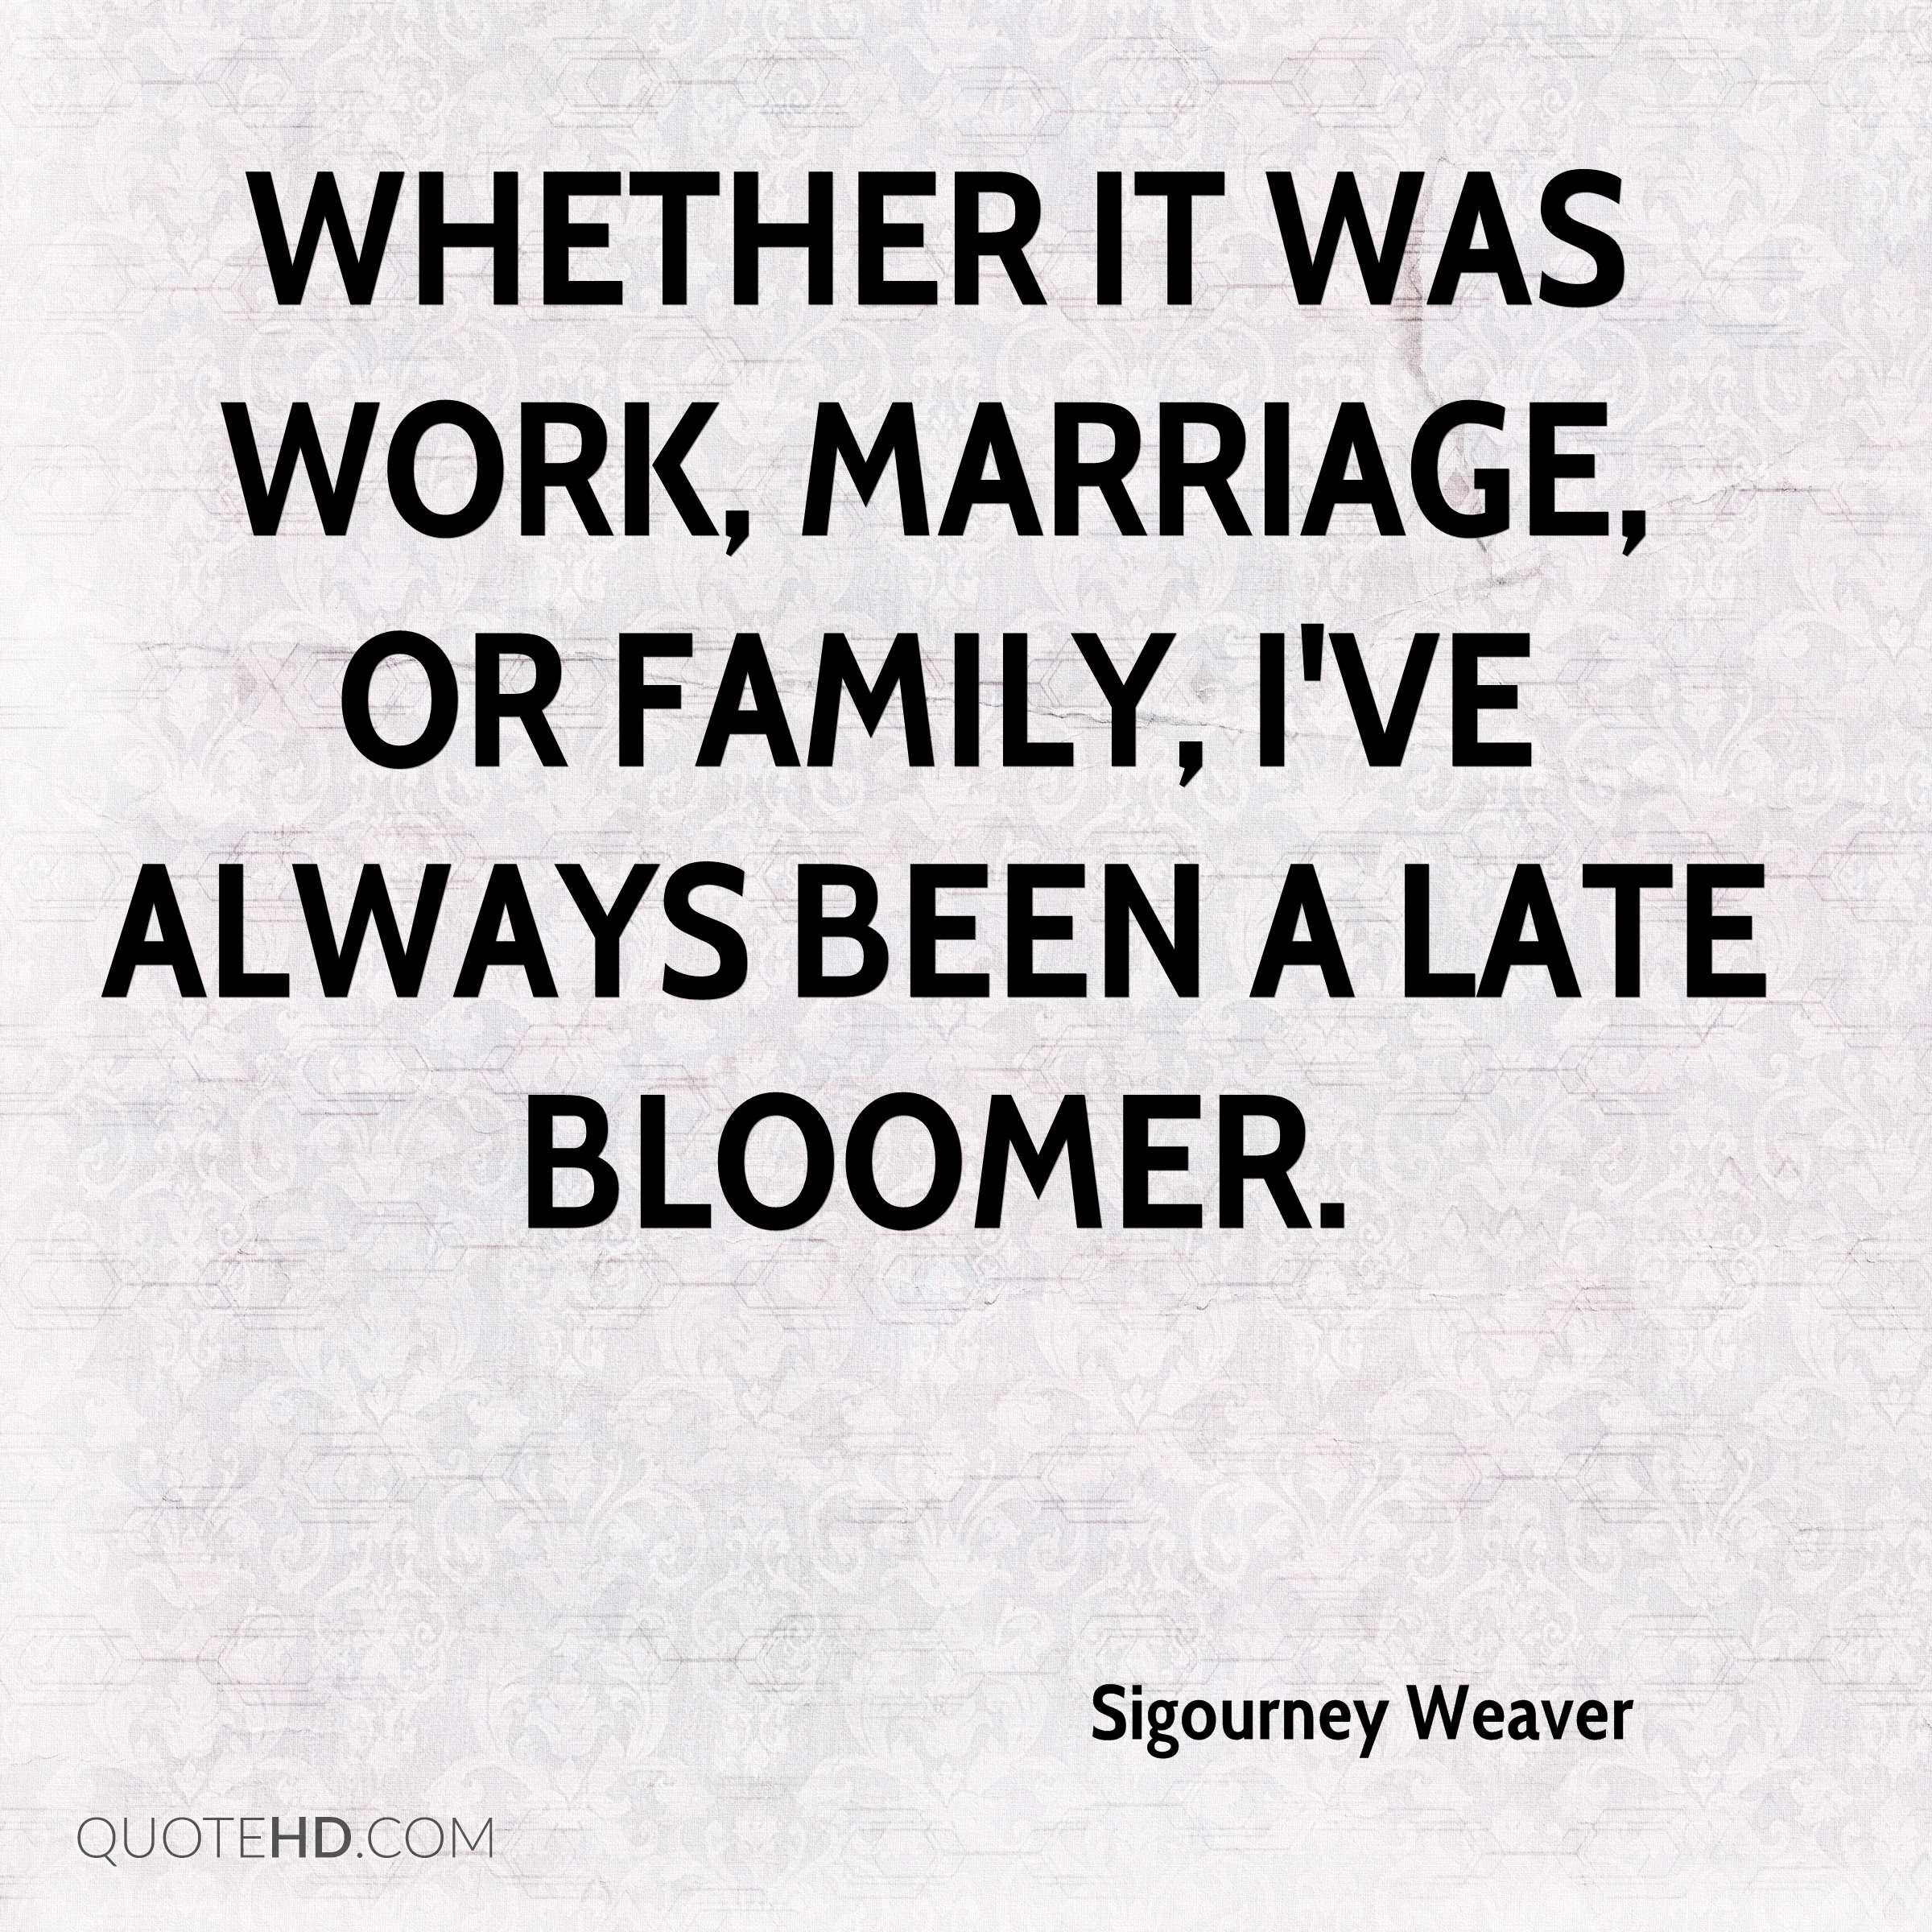 Whether it was work, marriage, or family, I've always been a late bloomer.